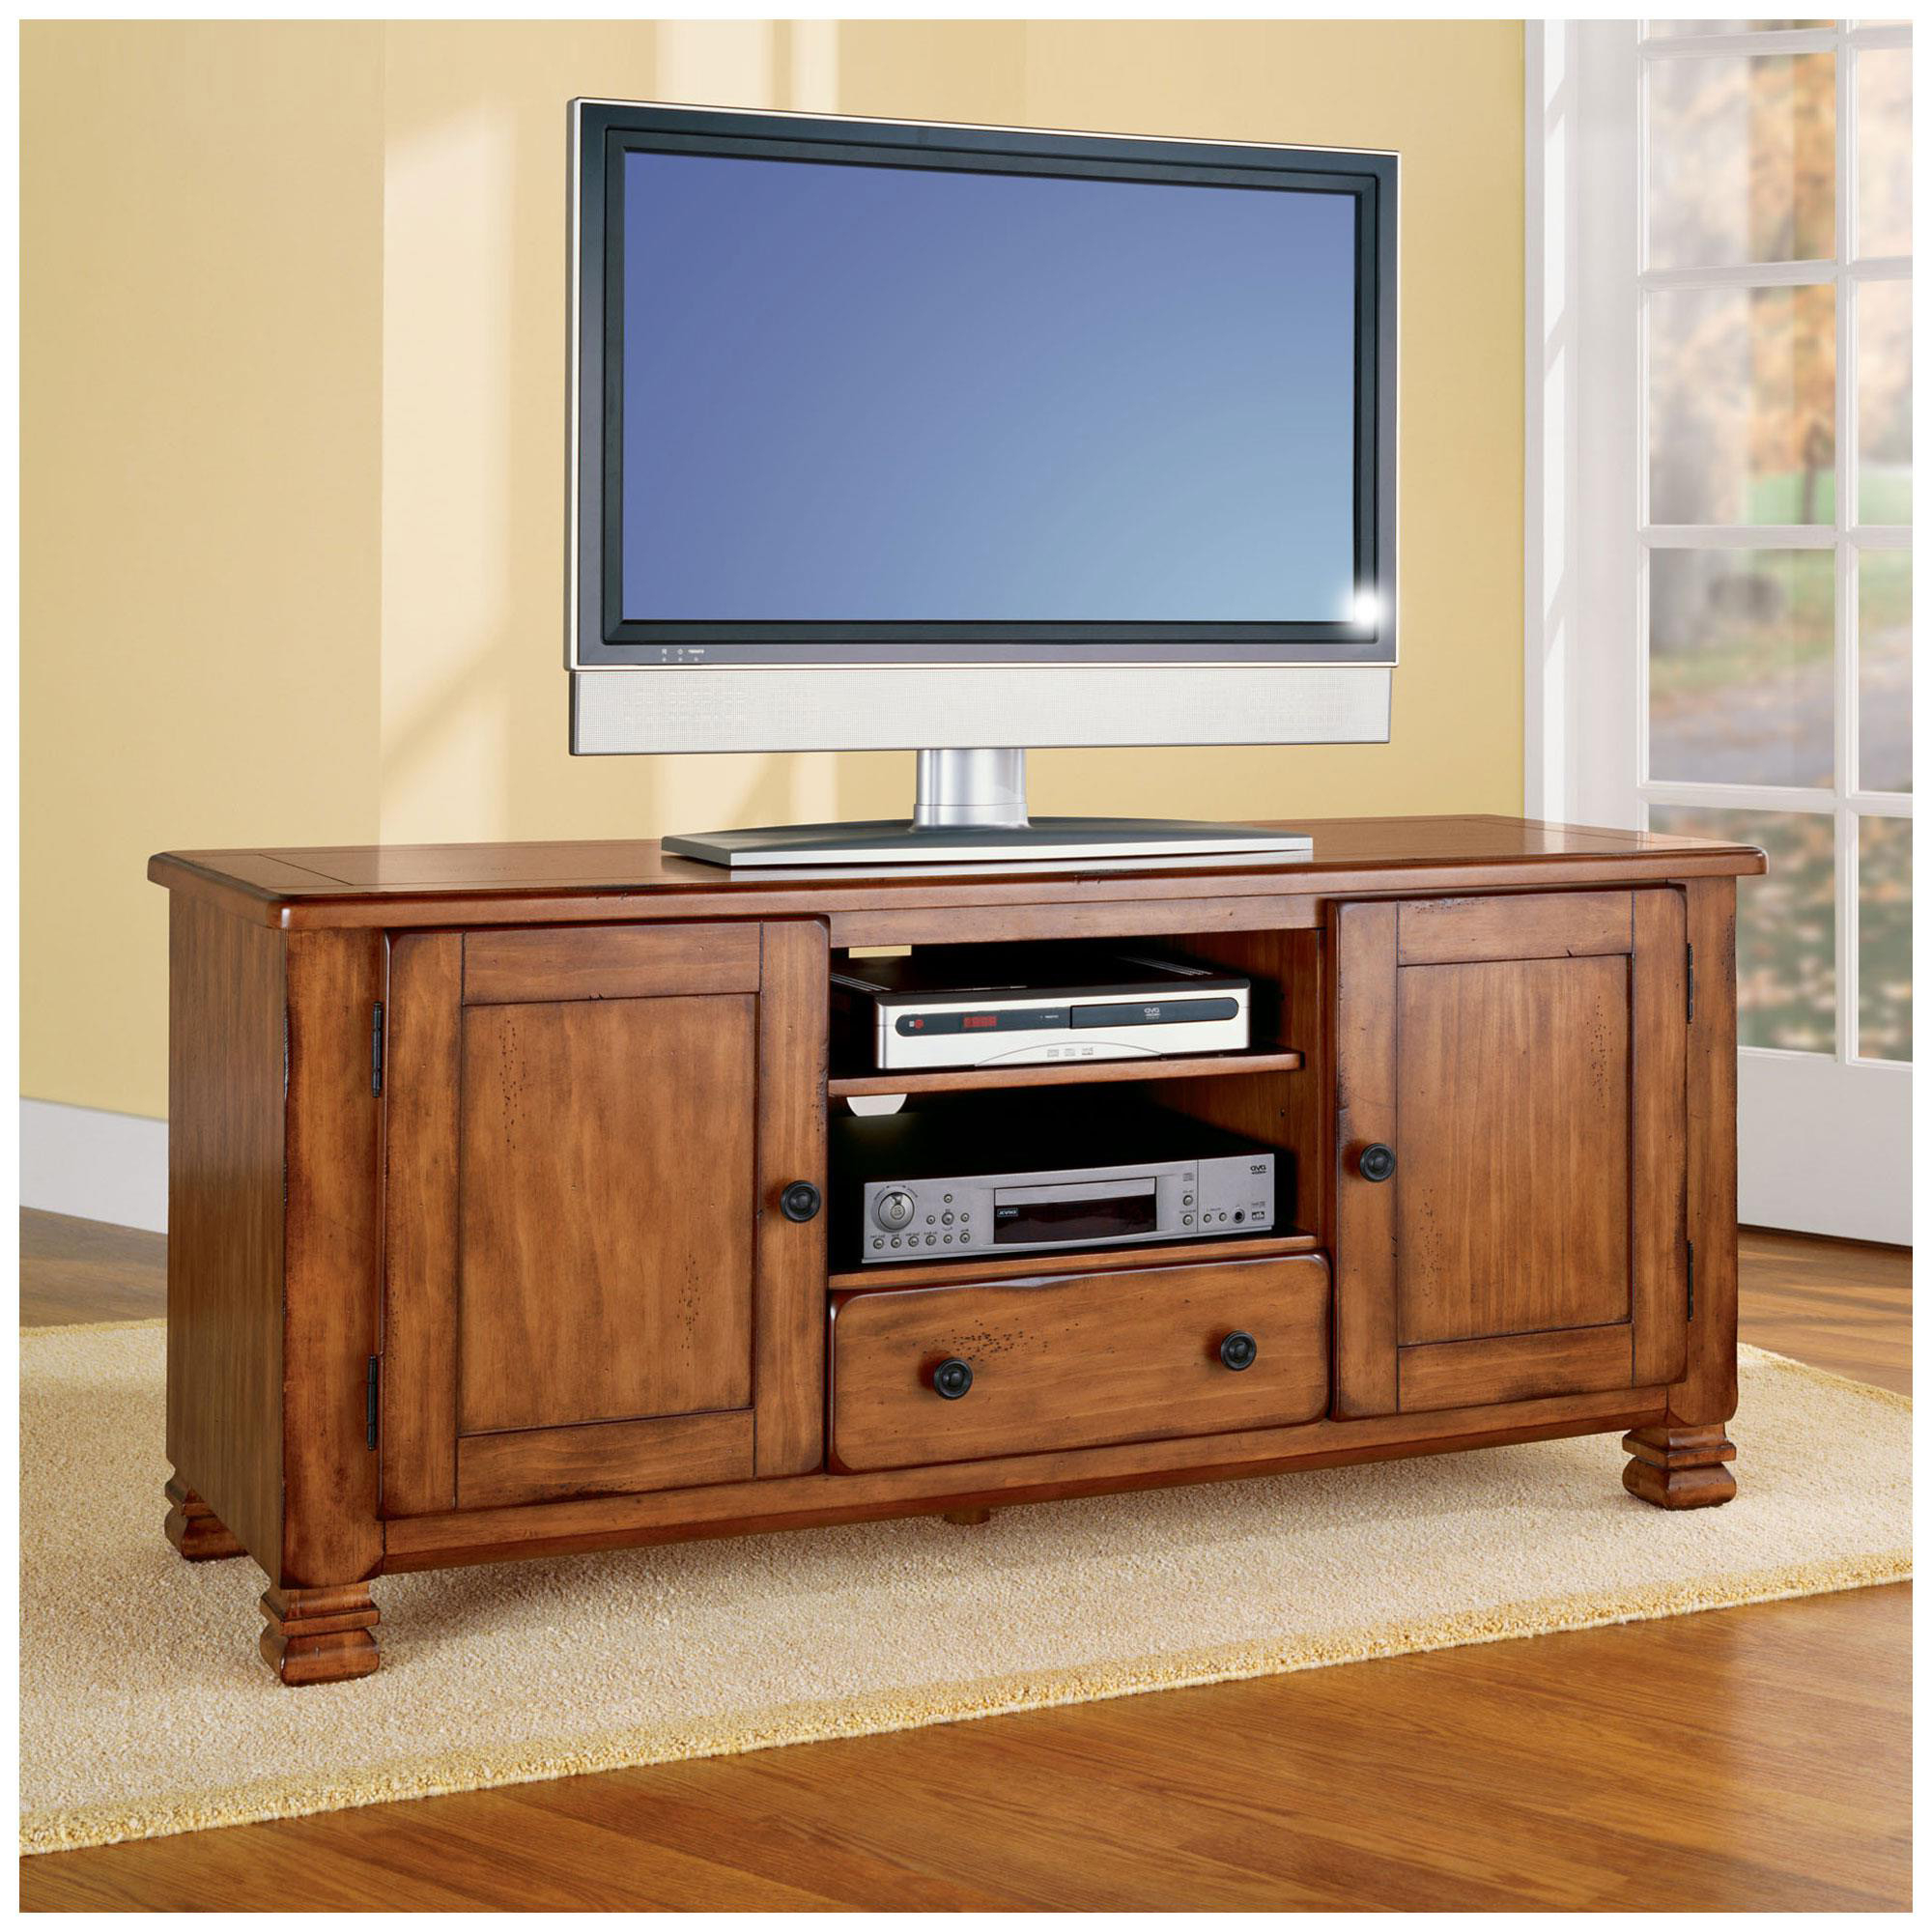 Well Known Cherry Wood Tv Cabinets Intended For Oak Tv Stand Walmart Solid Wood Stands For Flat Screens Light (View 7 of 20)